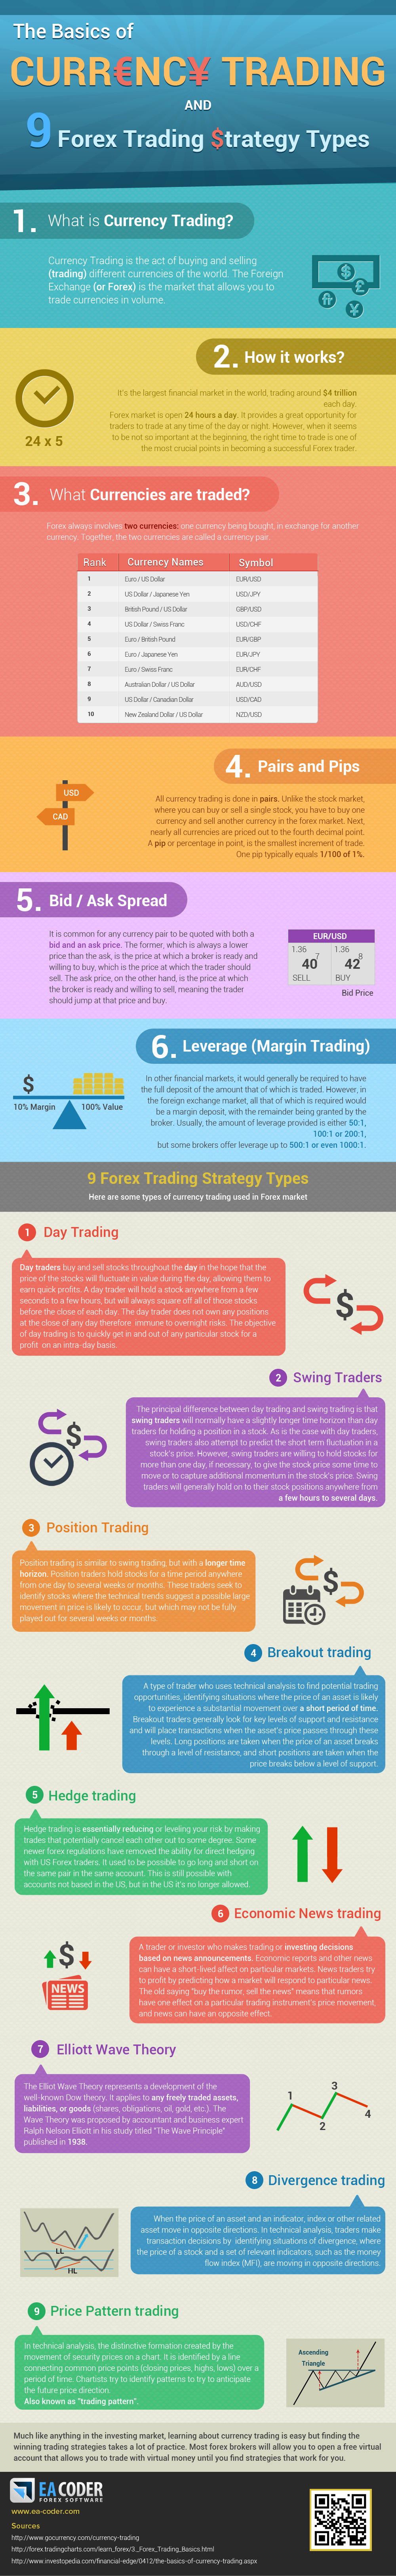 Infographic The Basics Of Currency Trading